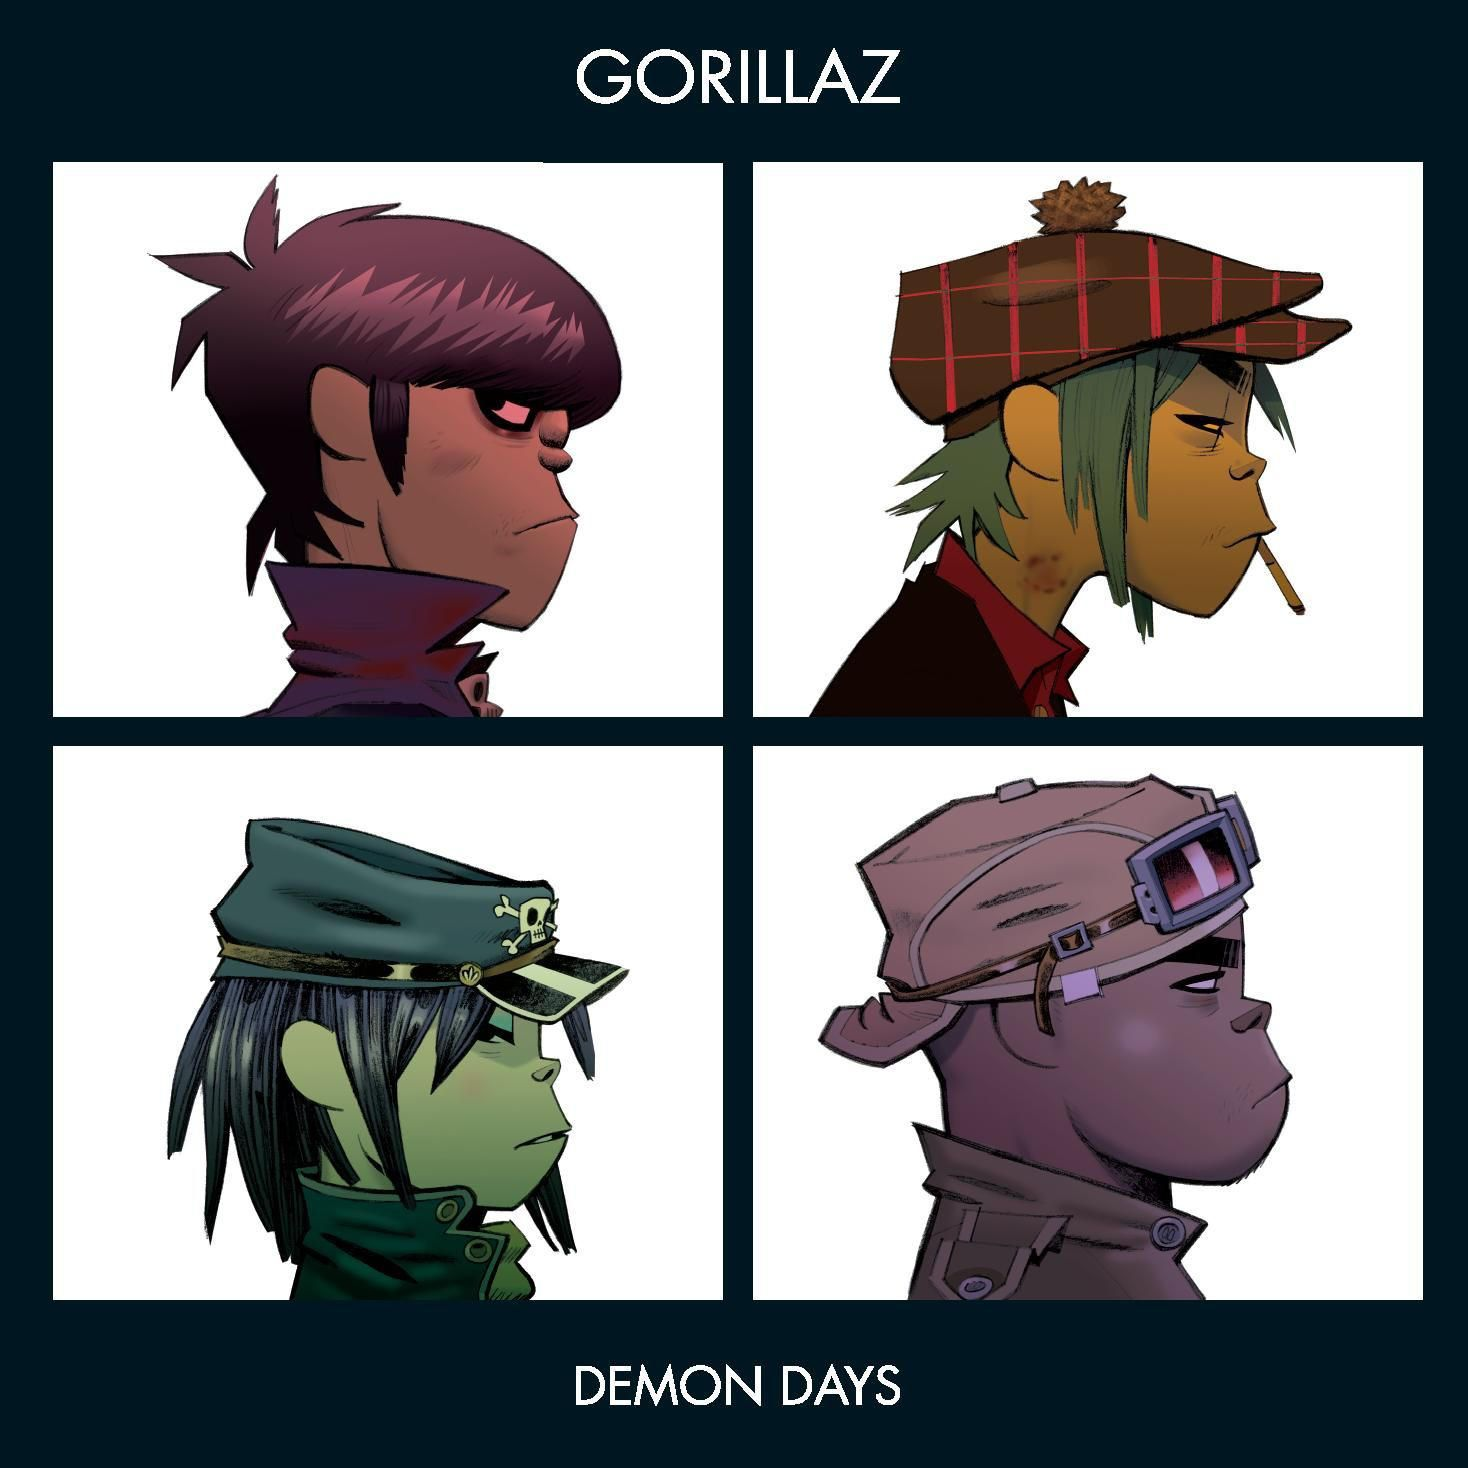 Gorillaz - Demon Days album cover